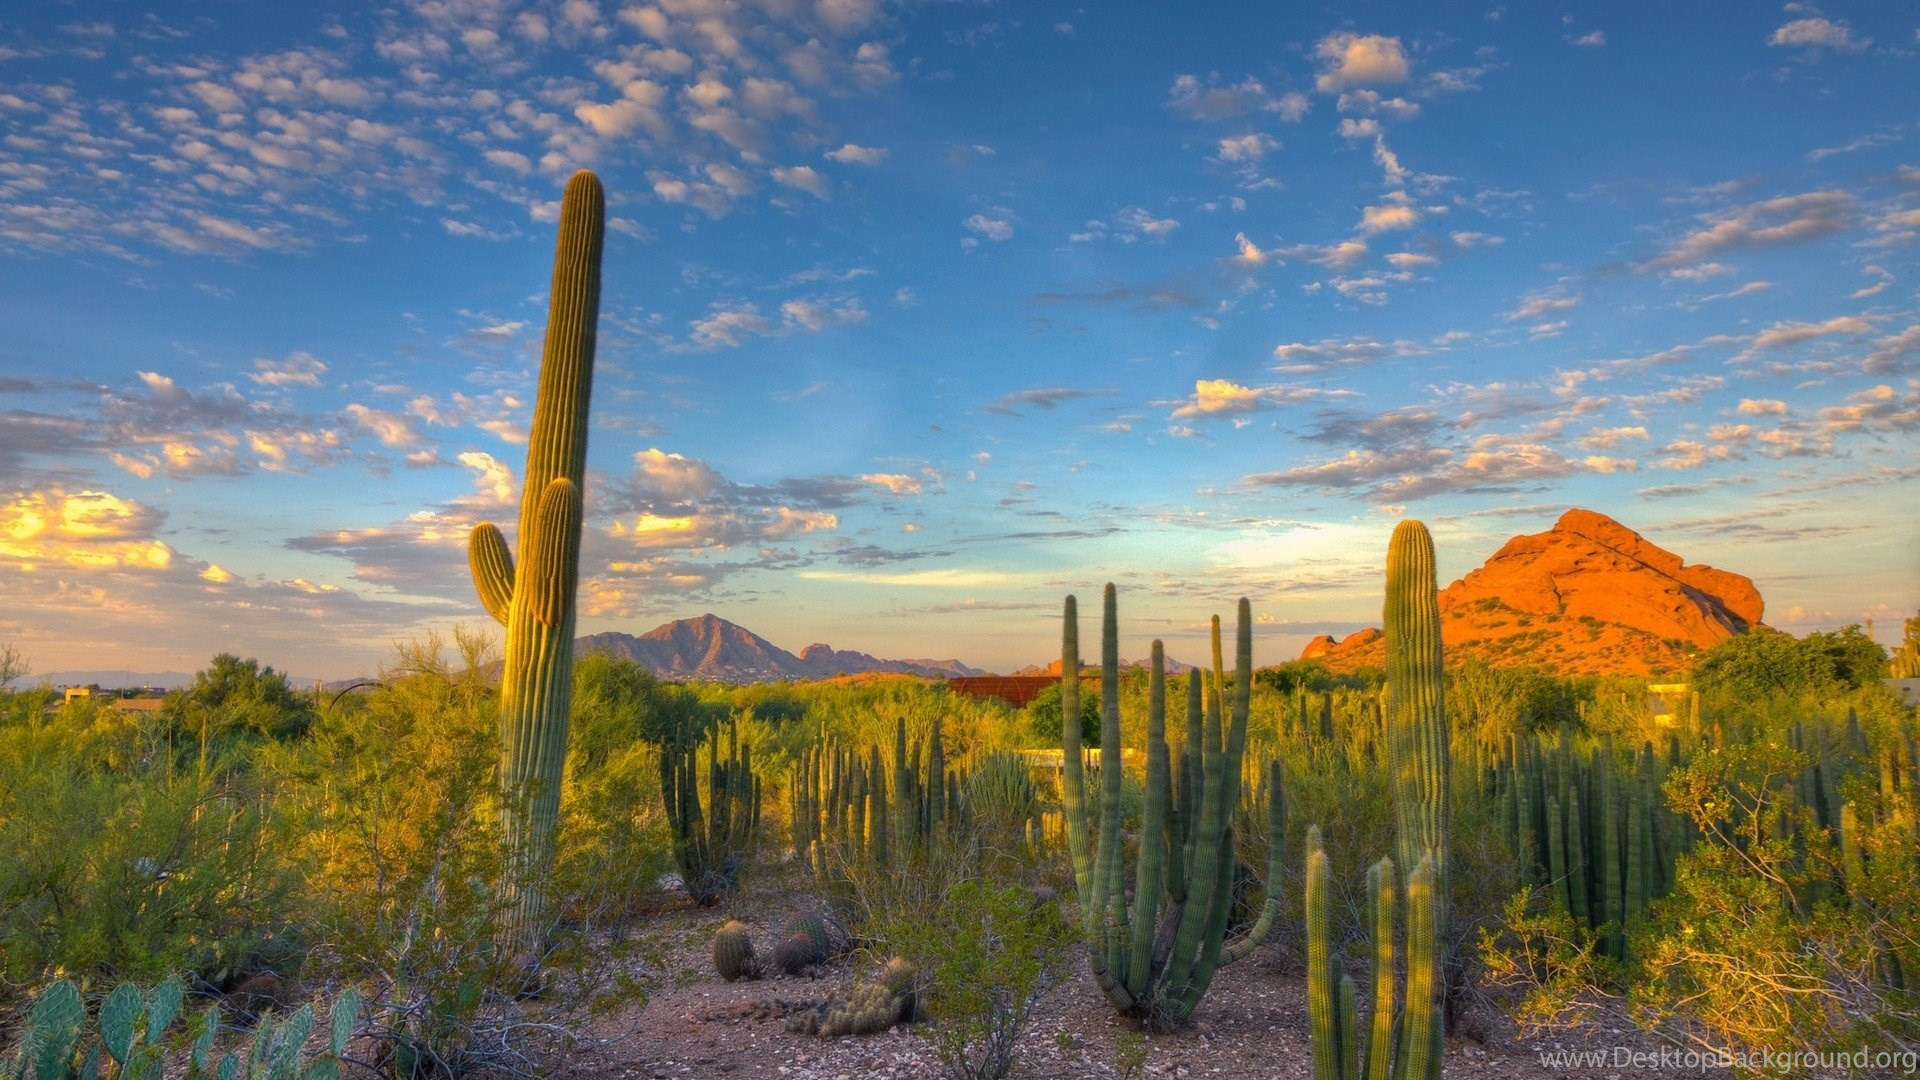 landscape, nature, desert, cactus, mountain, arizona wallpapers hd